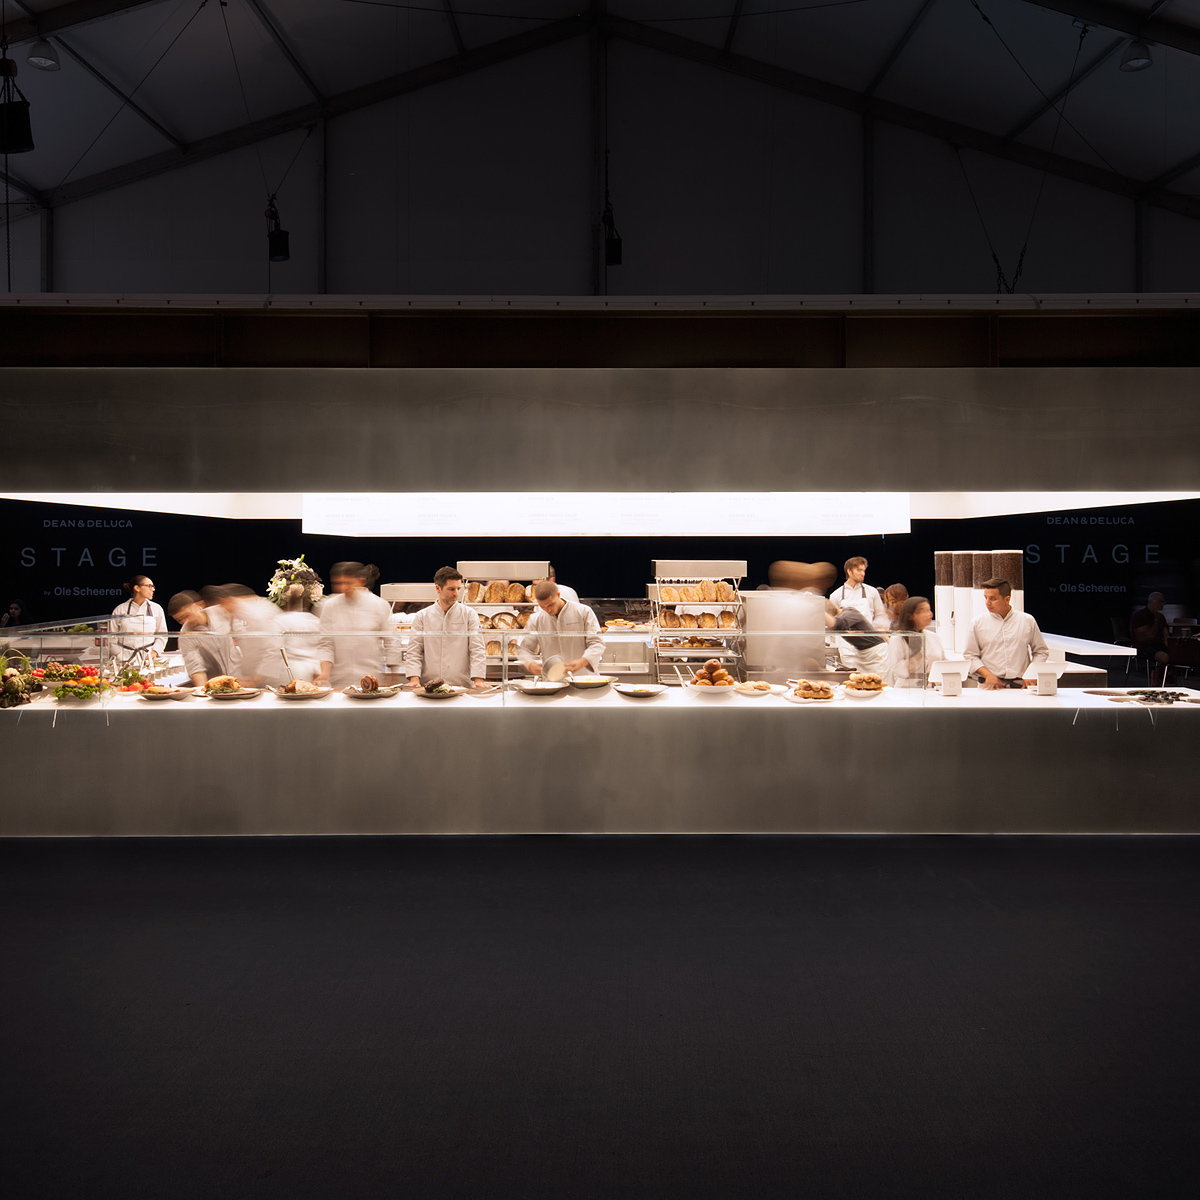 Dean and DeLuca and Ole Scheeren Unveiled STAGE at Design Miami